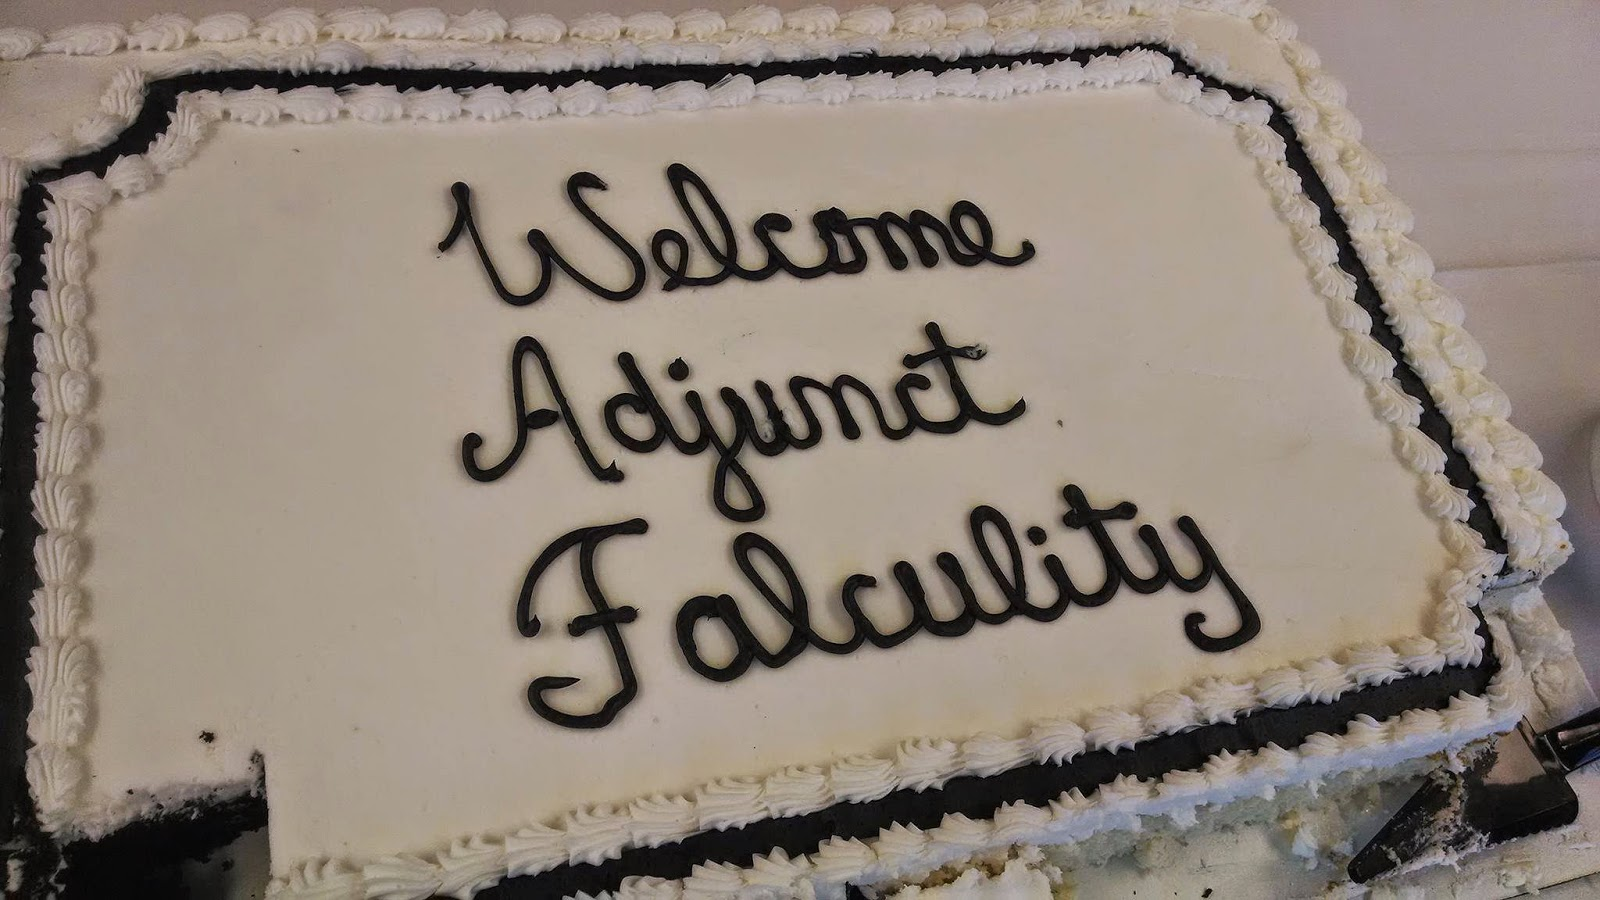 Misspelled Adjunct Cake